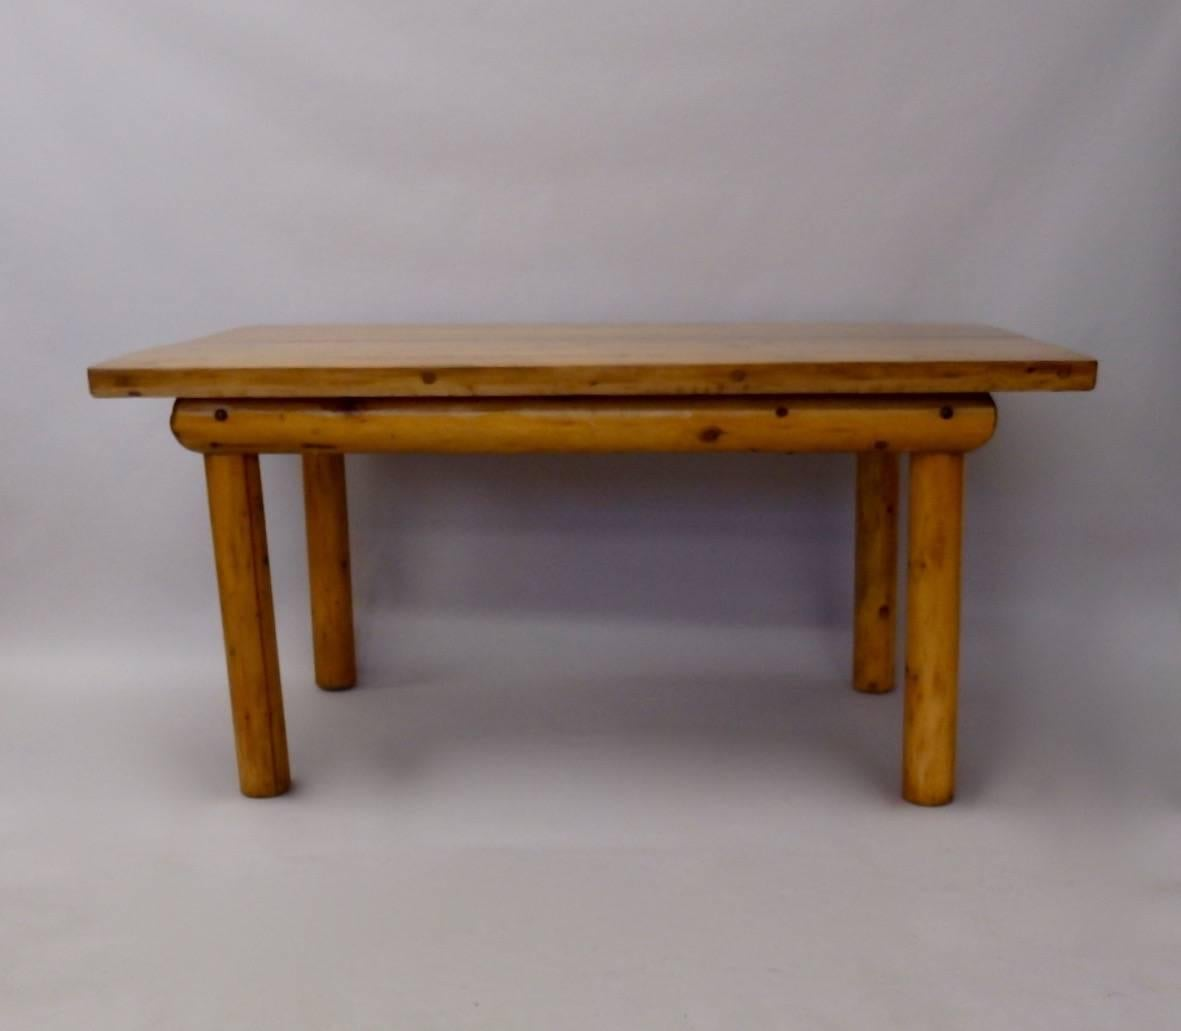 Knotty Pine Rustic Adirondack Ranch Or Cottage Dining Table With Benches In  Excellent Condition For Sale